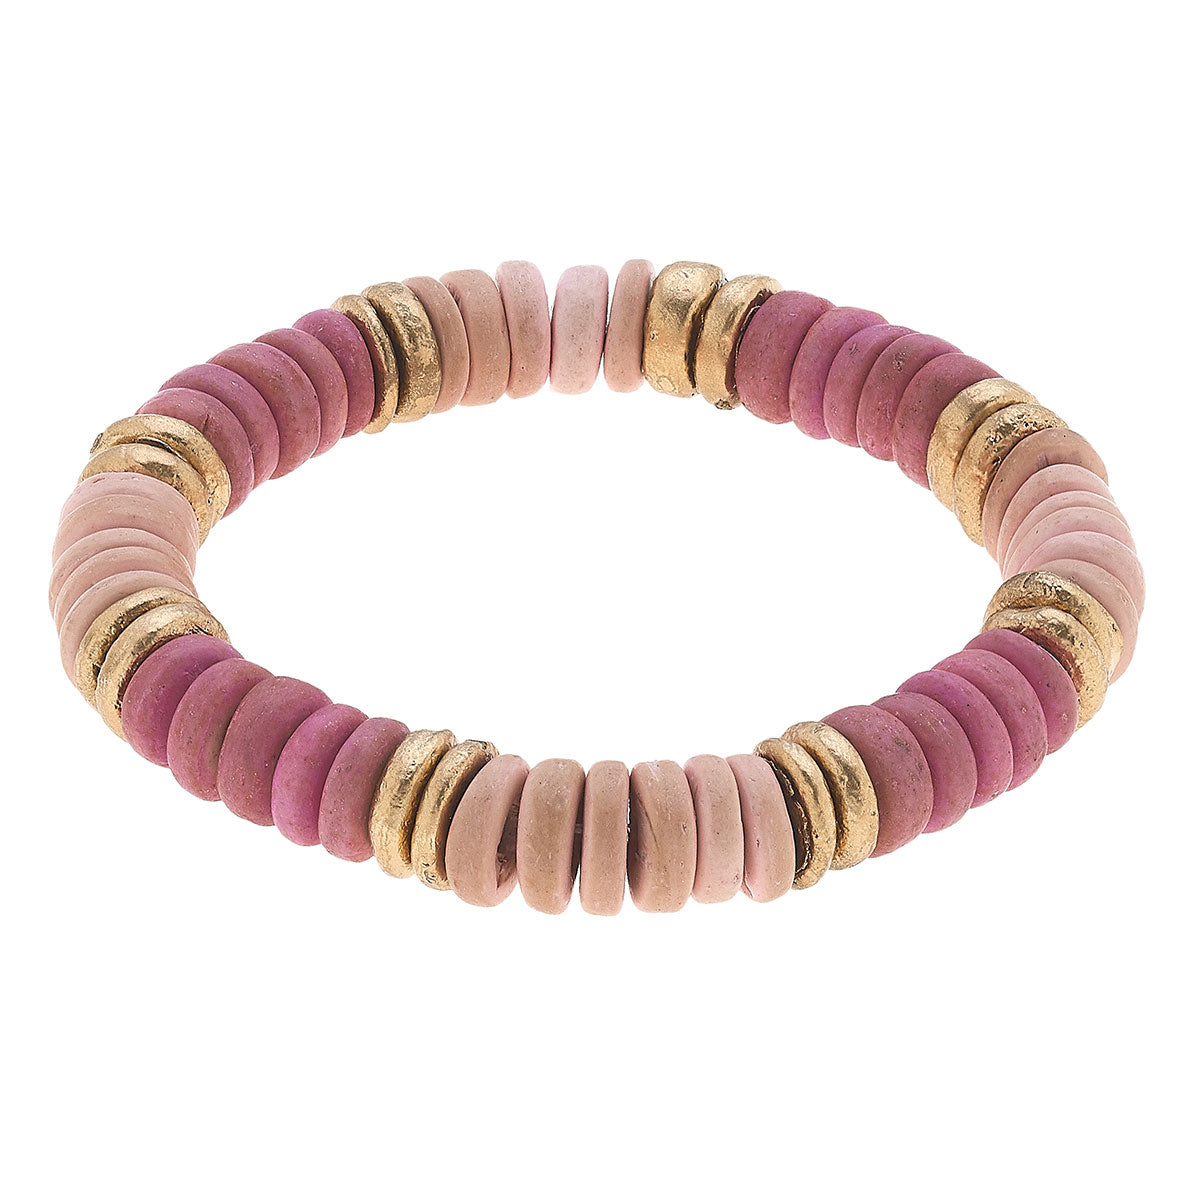 Presley Beaded Wood Stretch Bracelet in Blush Pink